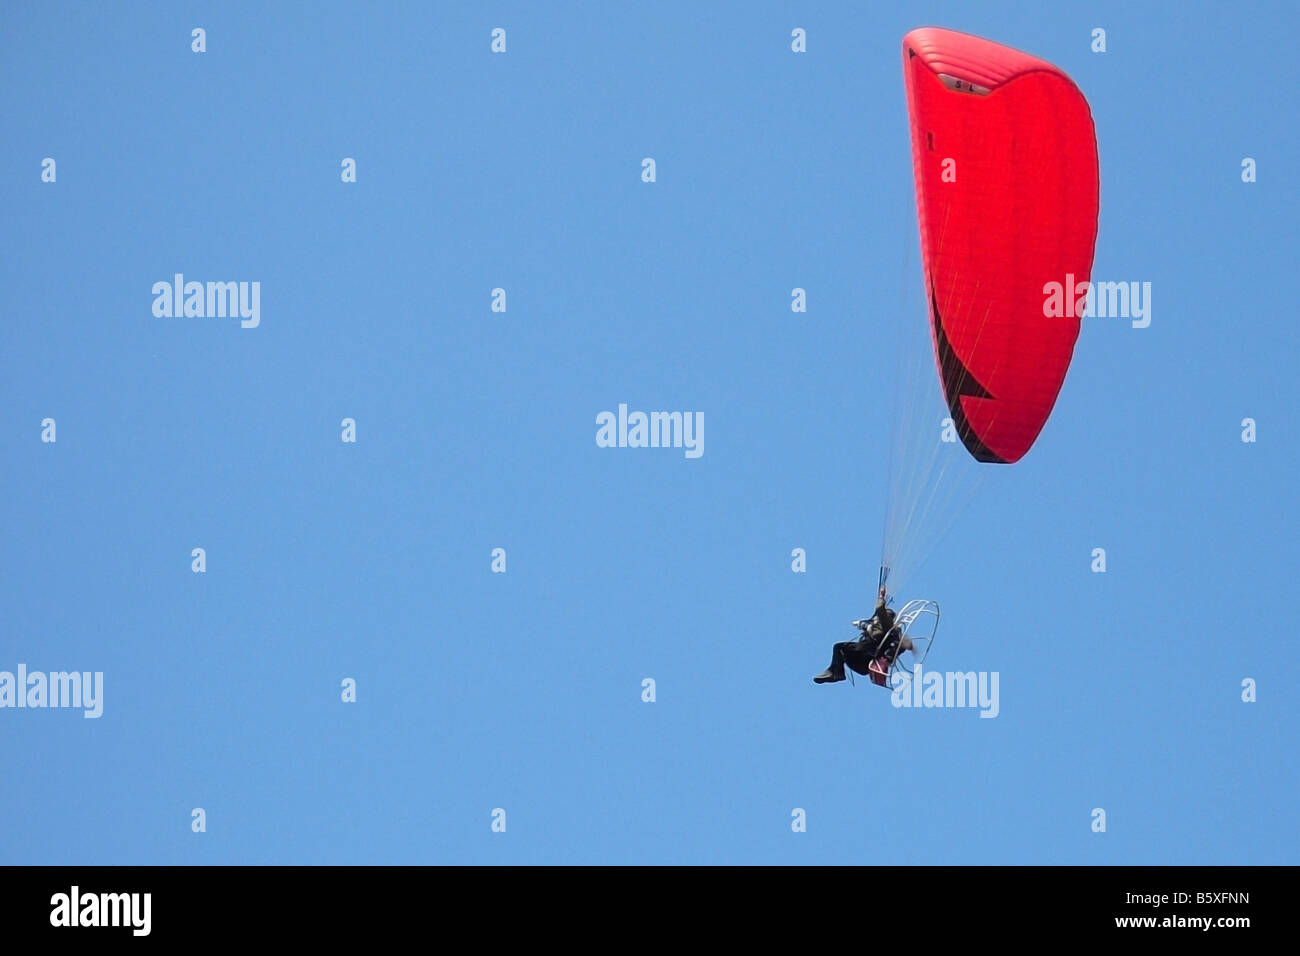 A parachutist flew in the clear sky - Stock Image